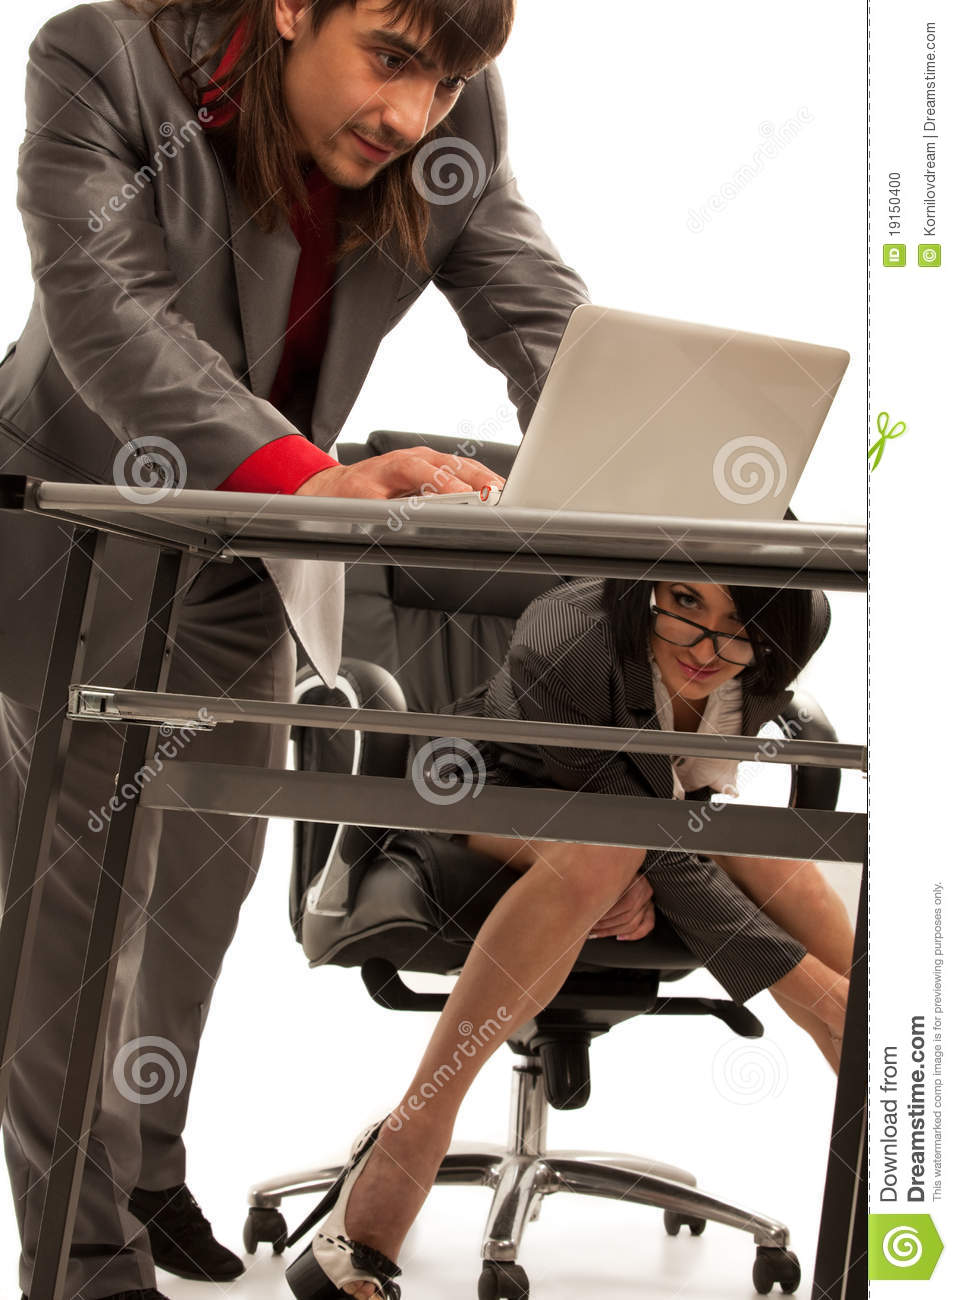 Cecretary Sous Le Bureau Flirtant Avec Le Collgue Photo stock